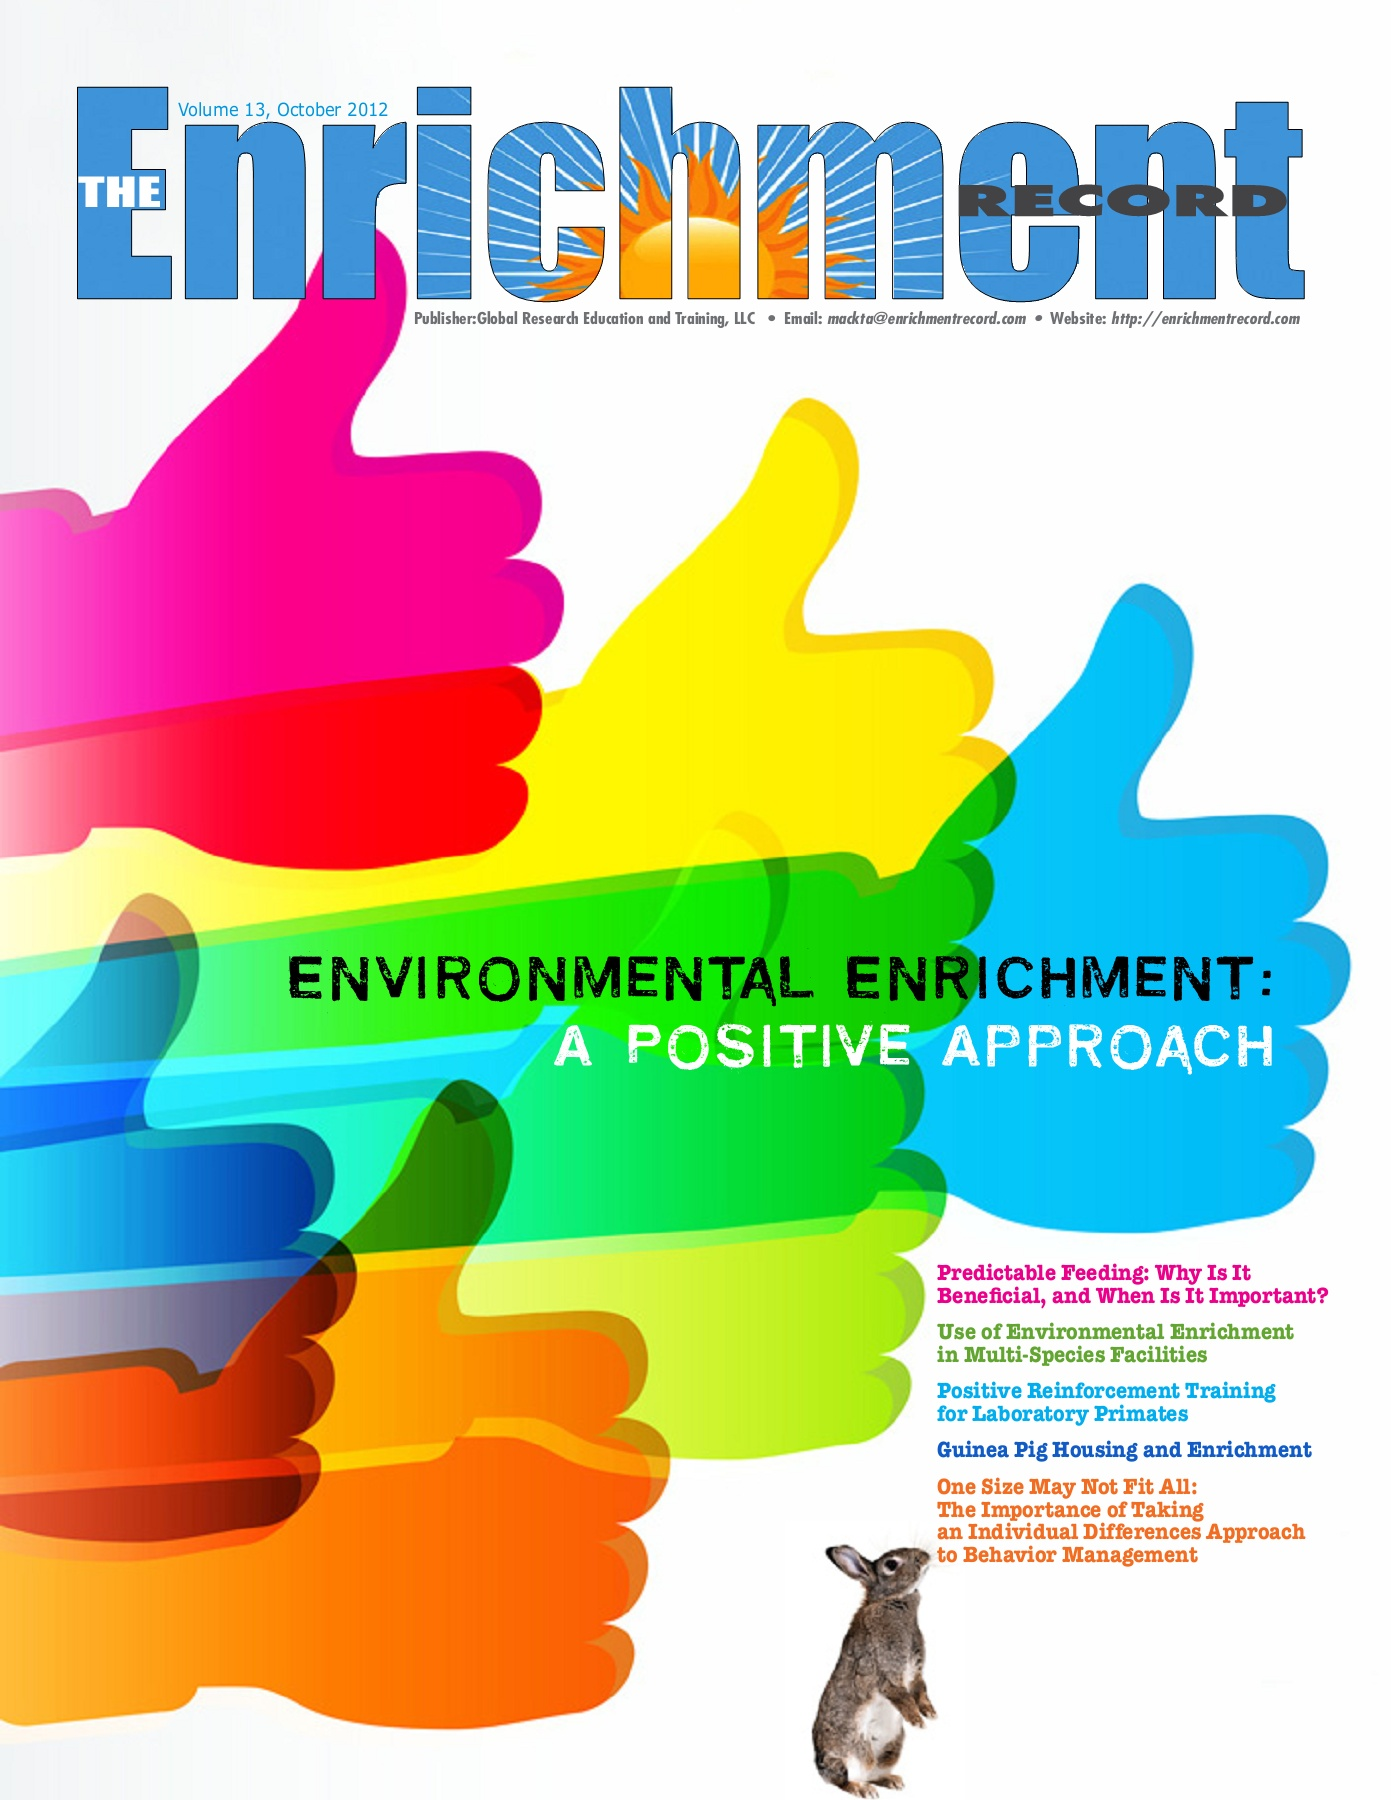 Environmental Enrichment May Help Treat >> Enrichment Record 13 October 2012 Pages 1 28 Text Version